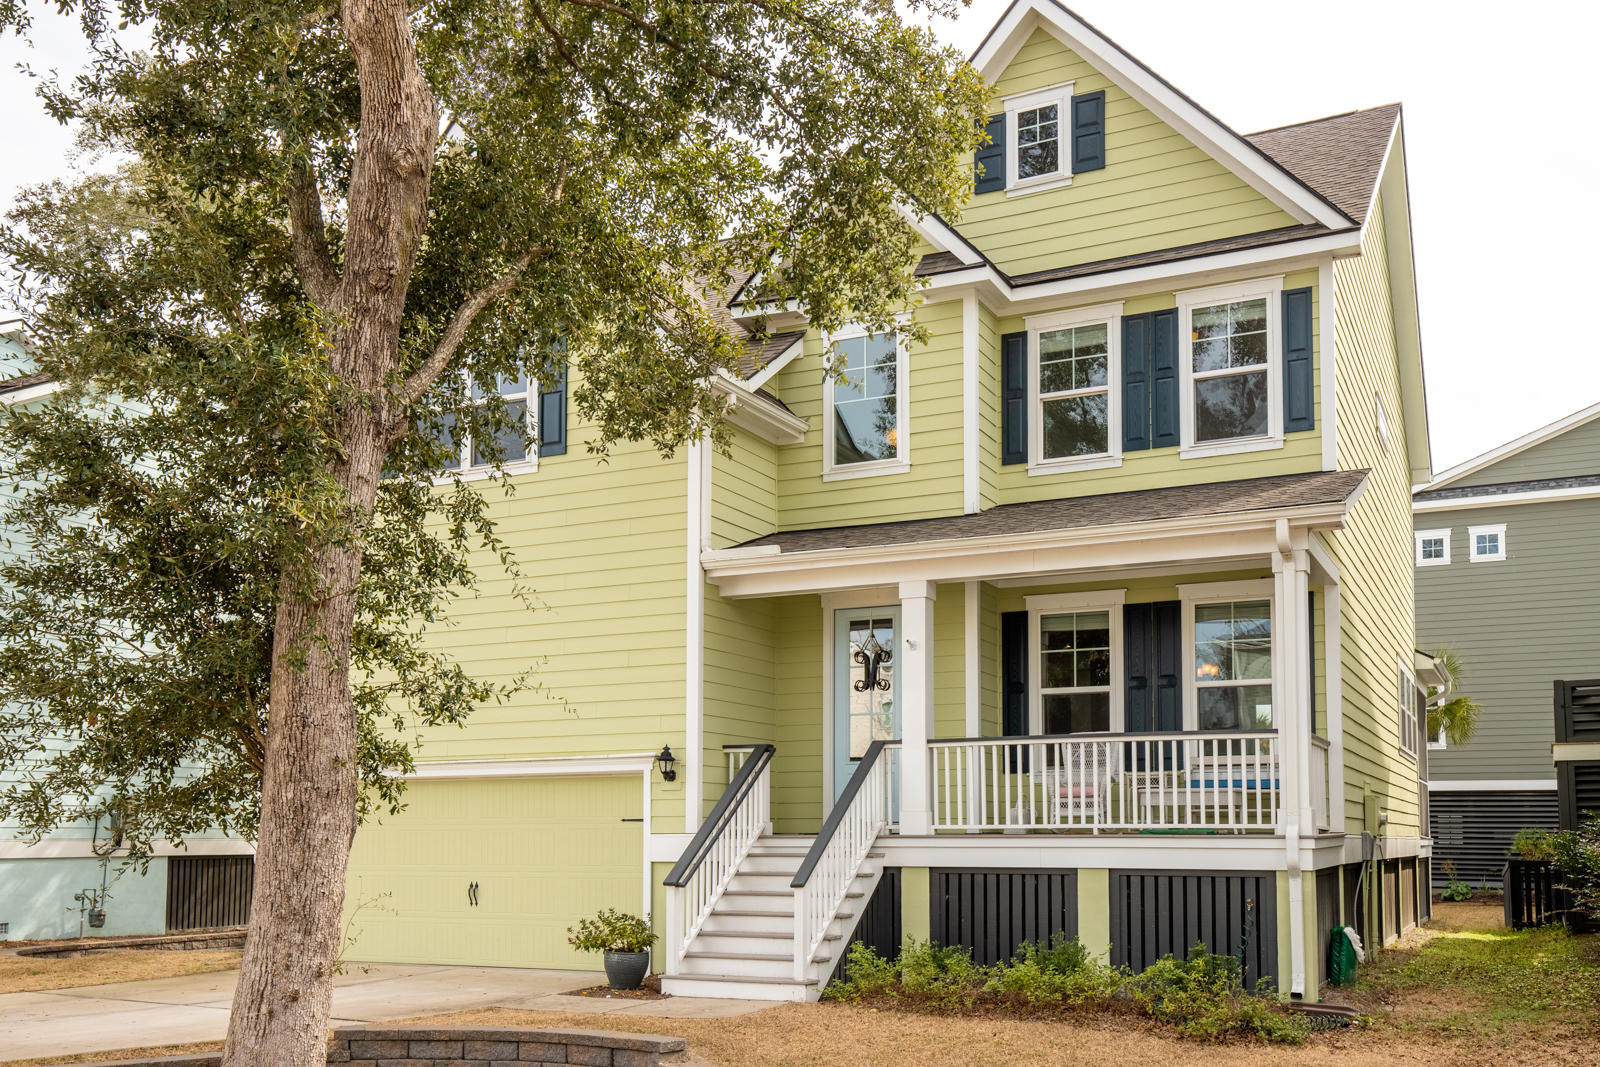 Oyster Point Homes For Sale - 1532 Keshi Pearl, Mount Pleasant, SC - 7